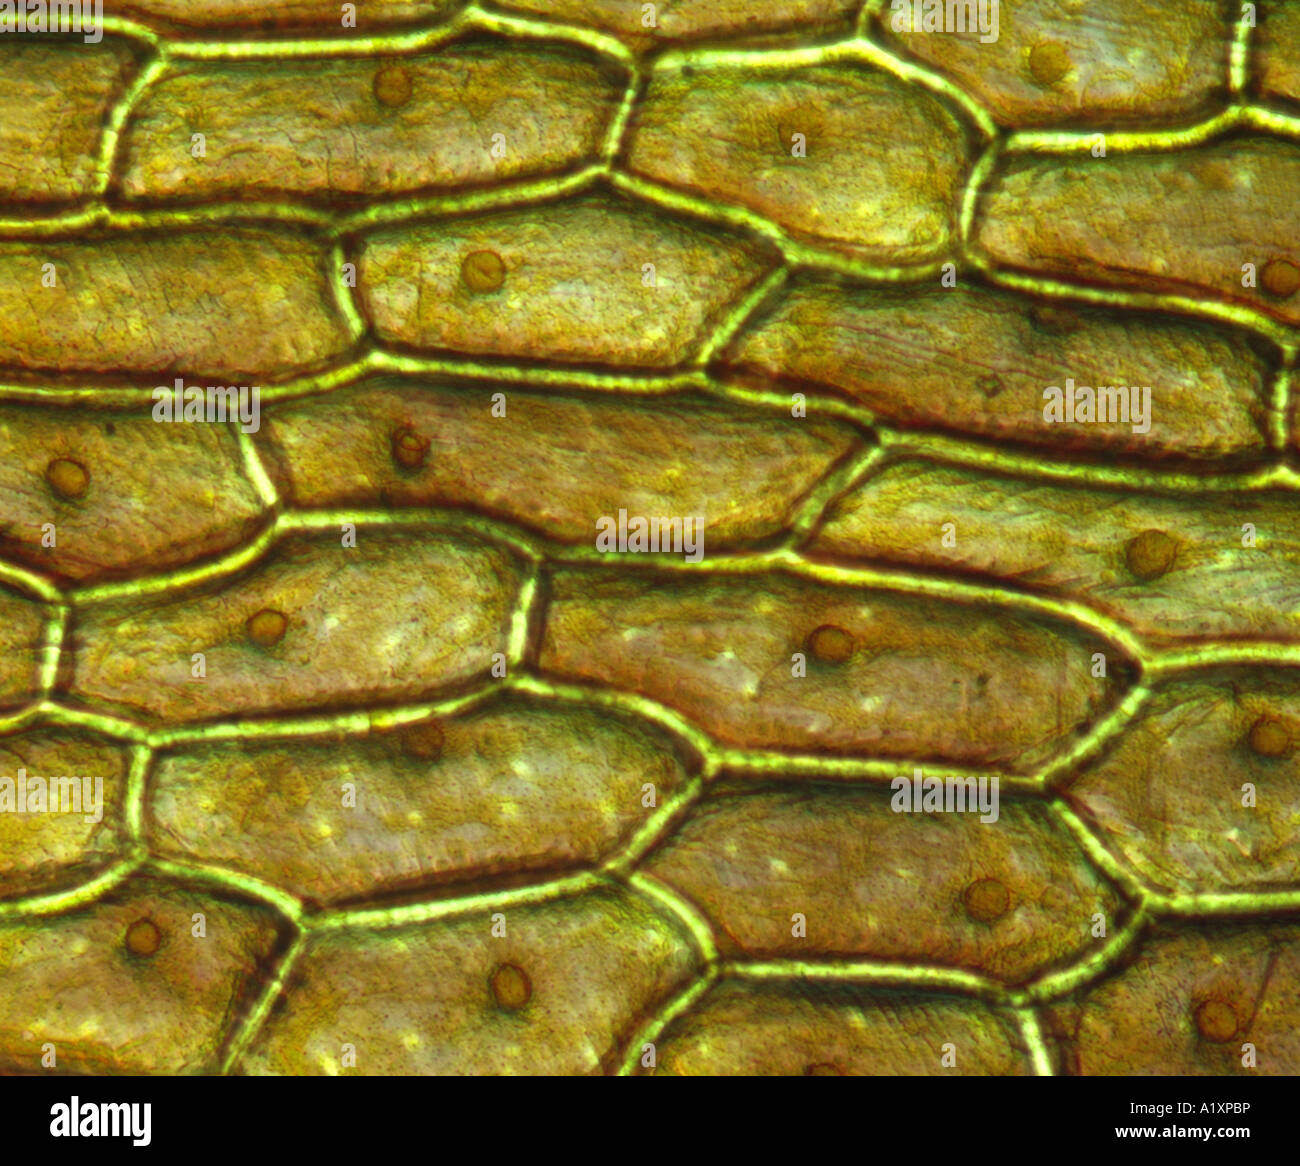 Onion Skin Cells  Epidermal Cells  Shows Cell Structure